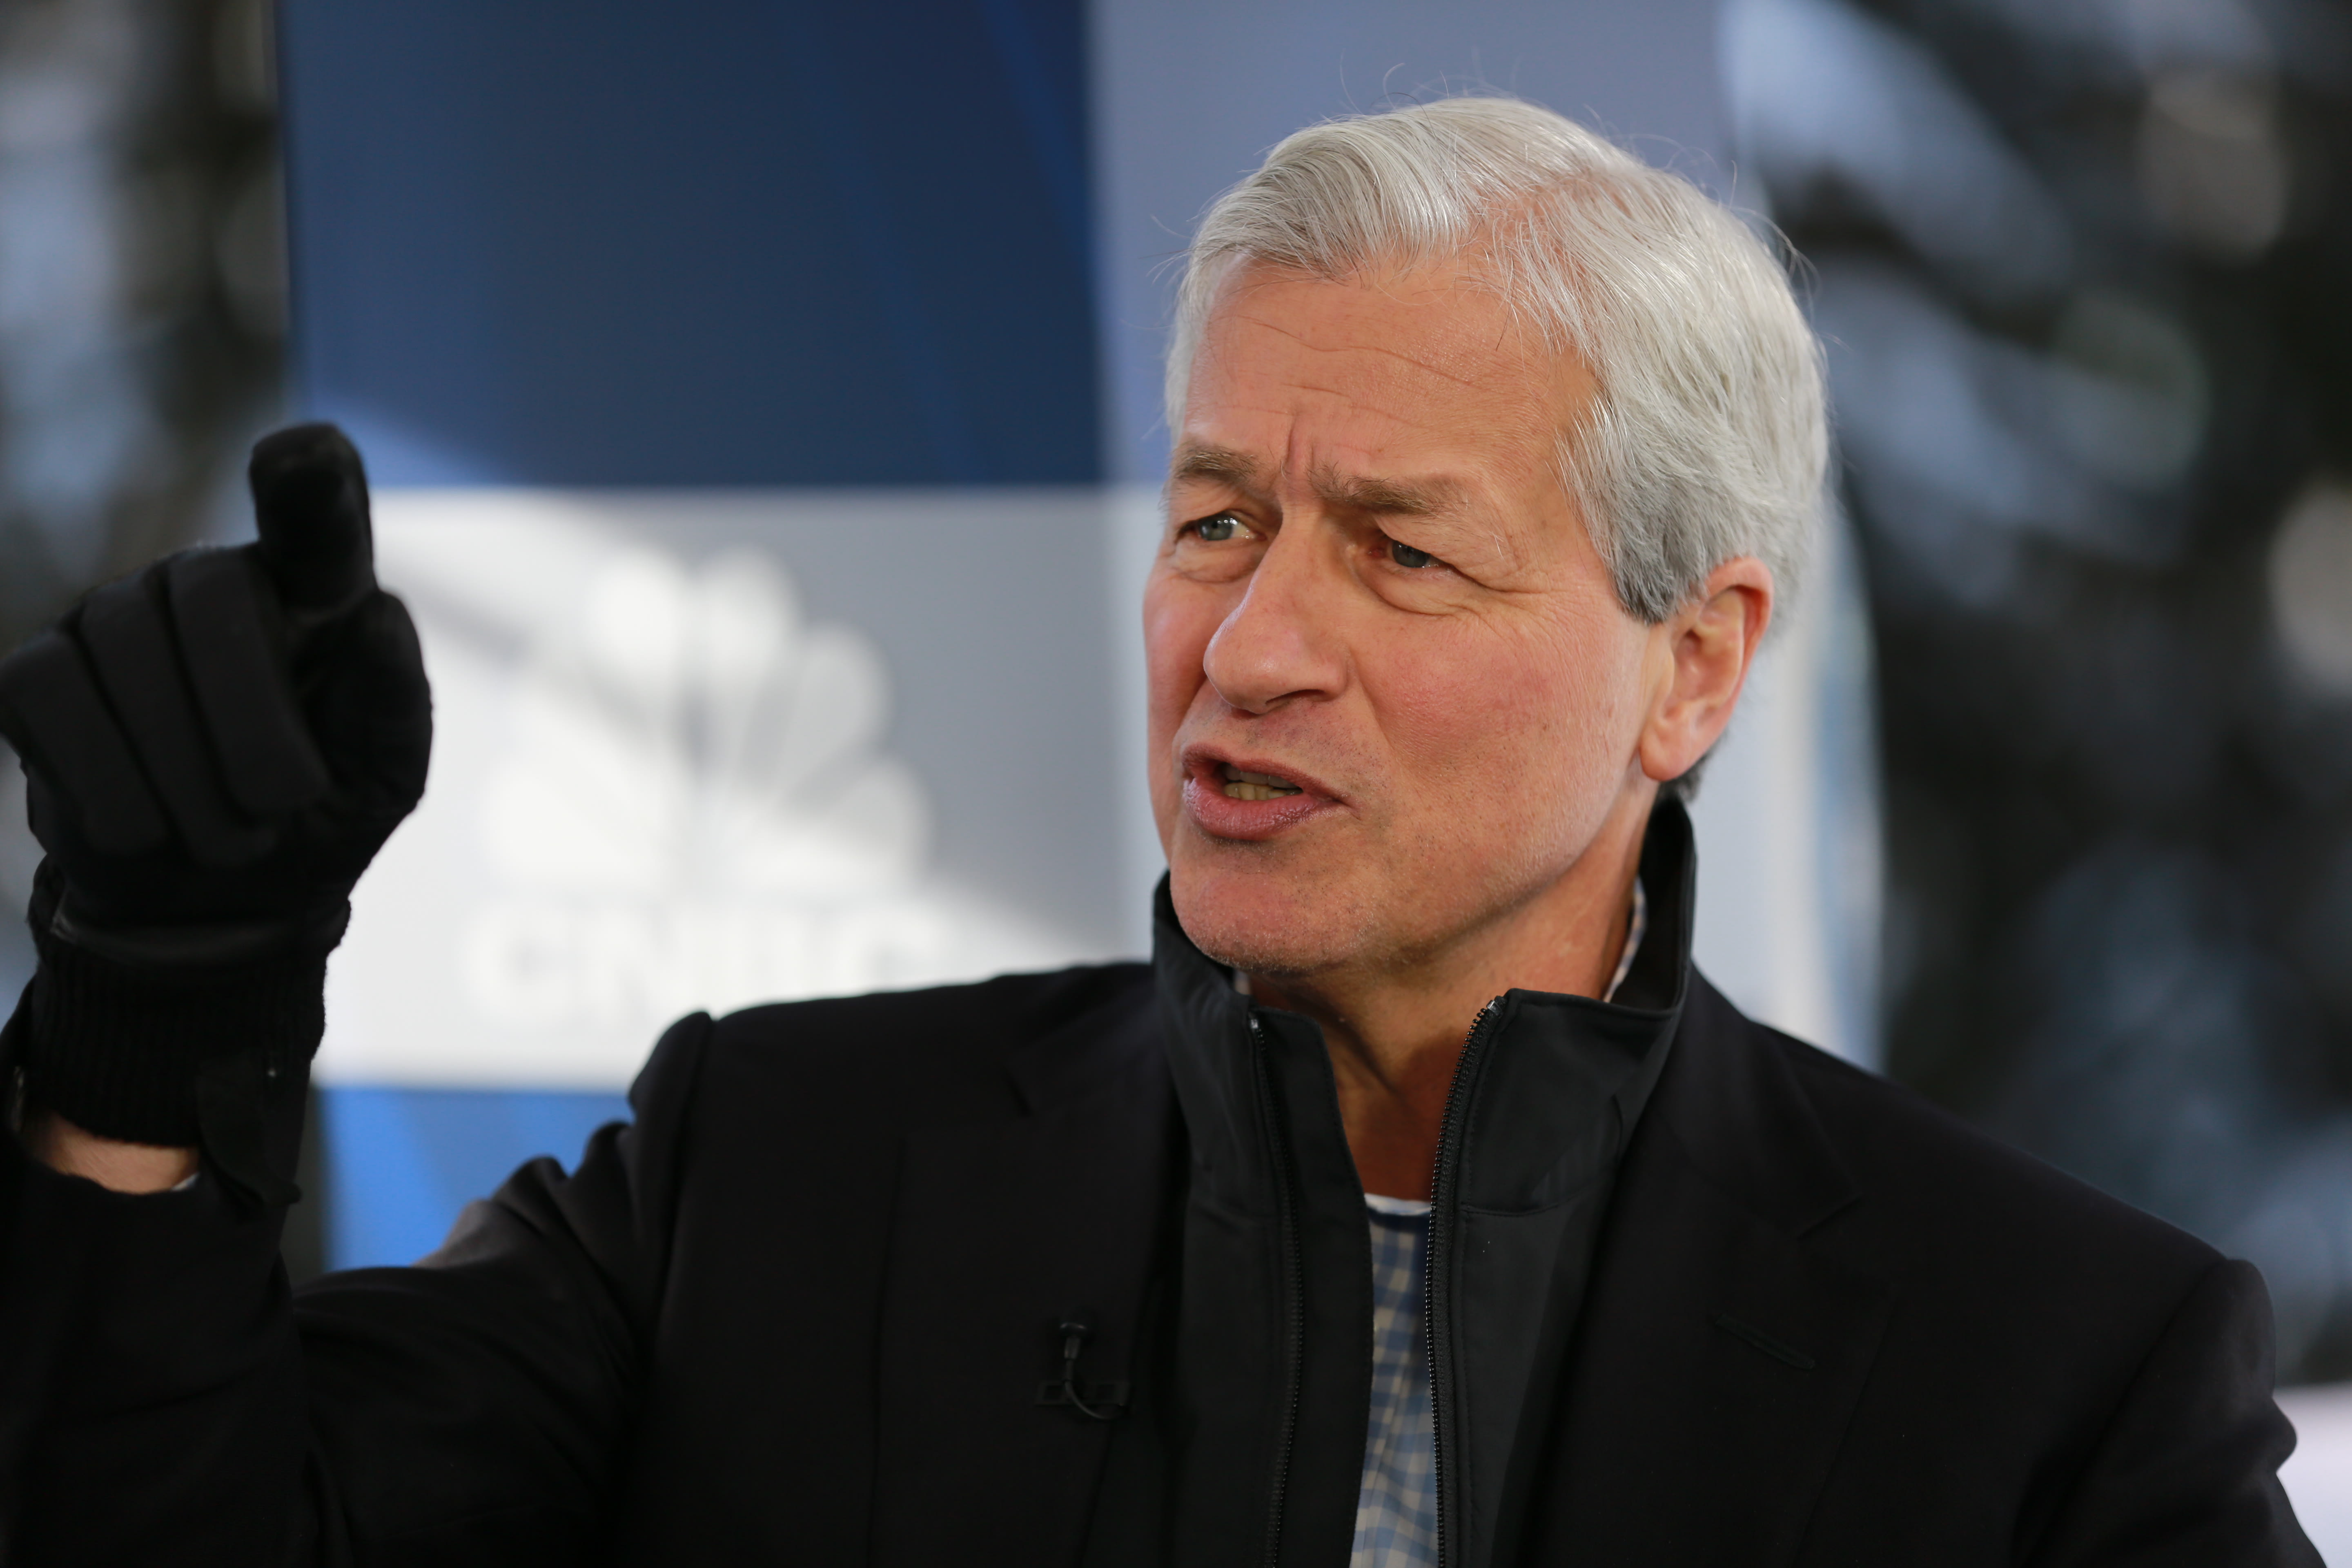 Jamie Dimon, who made $31 million last year, thinks wealth inequality is a problem